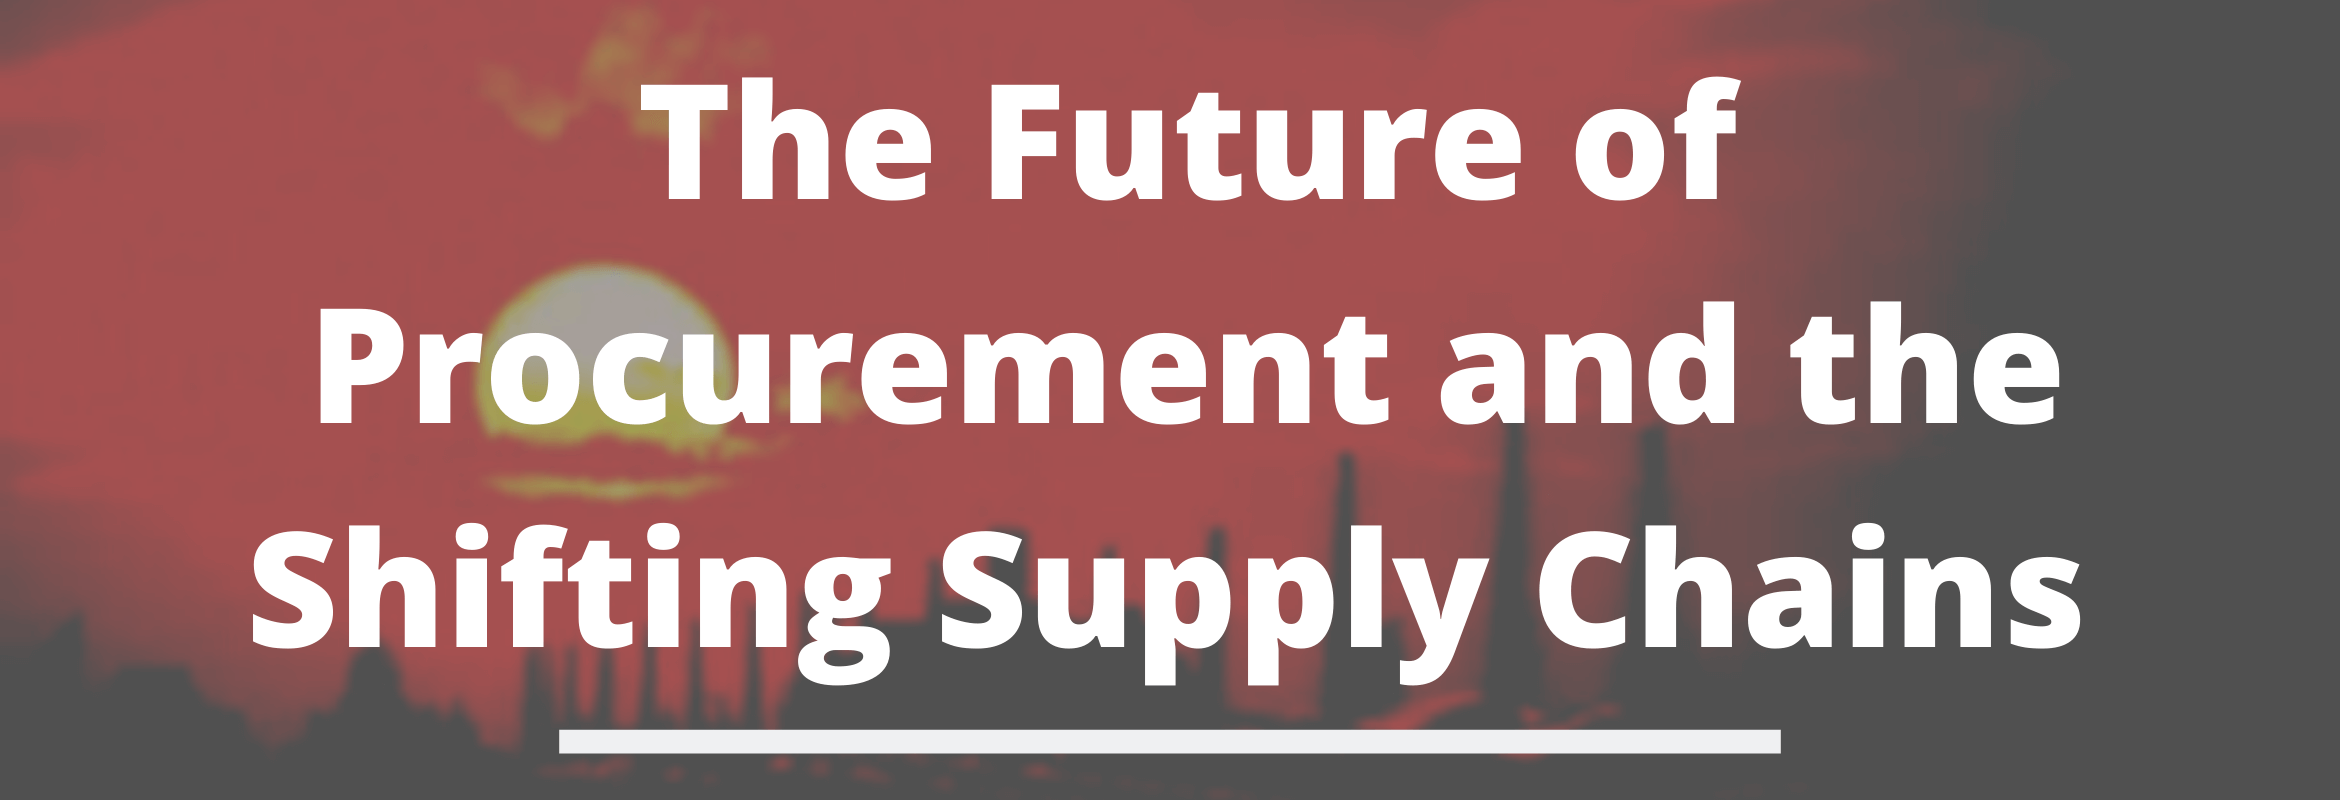 The future has to be about possibilities to reshape our supply chains.